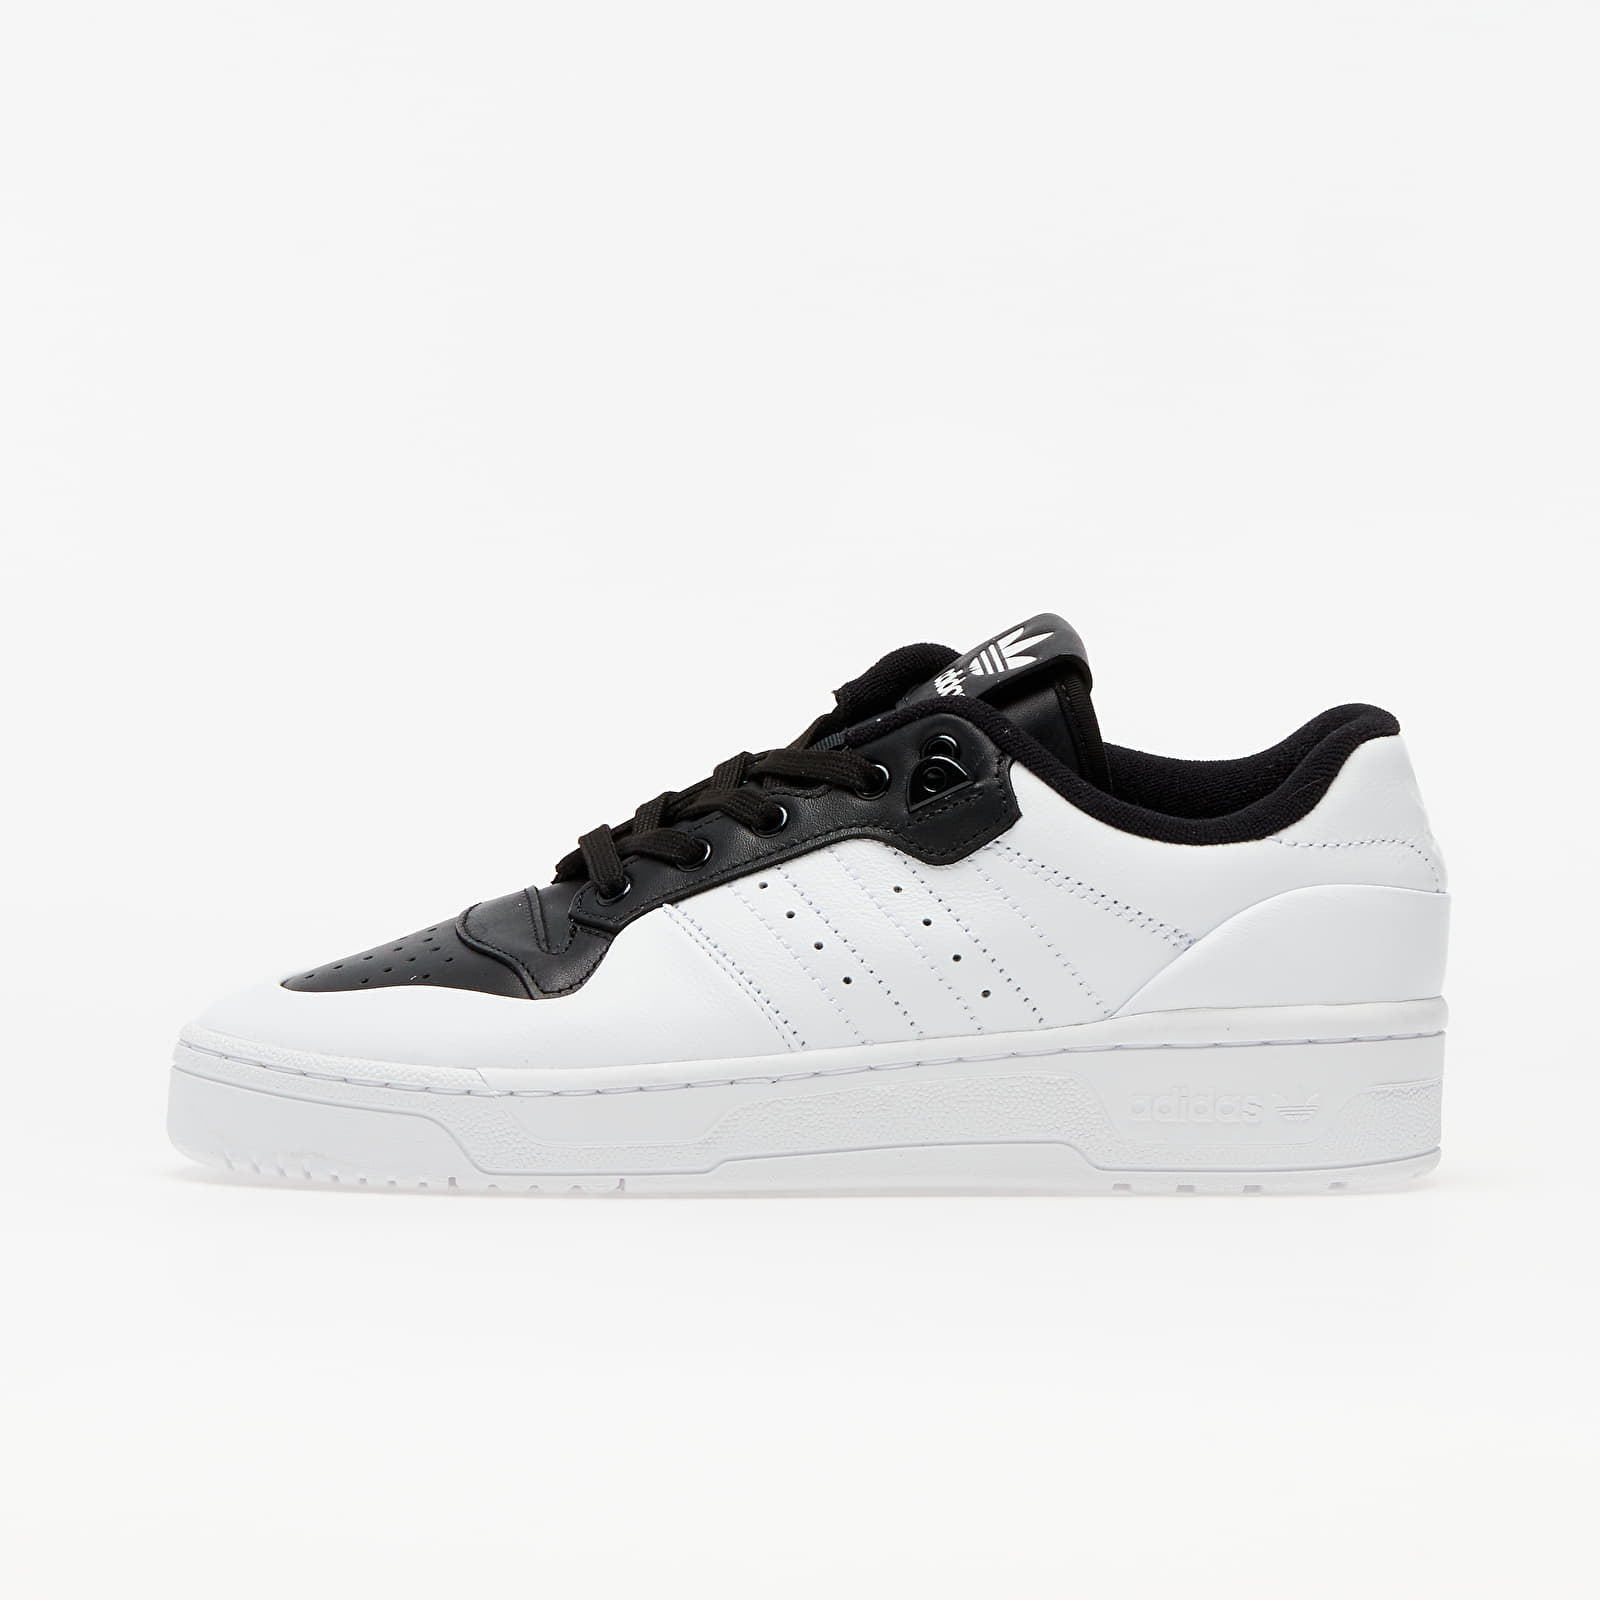 Chaussures et baskets homme adidas Rivalry Low Ftw White/ Core Black/ Ftw White